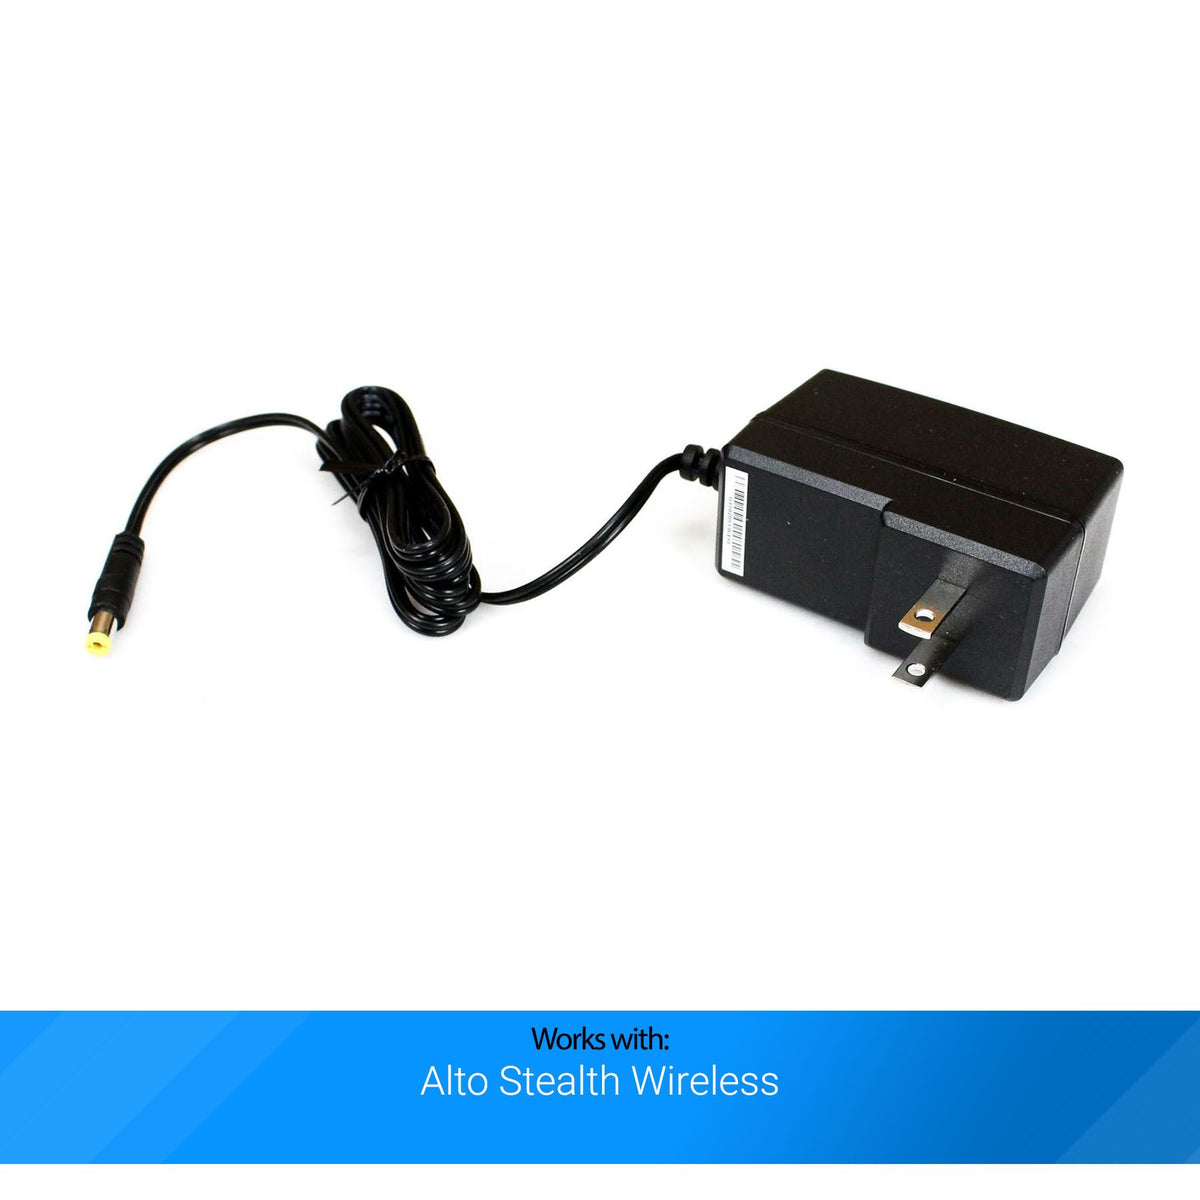 Alto Stealth Wireless Power Adapter